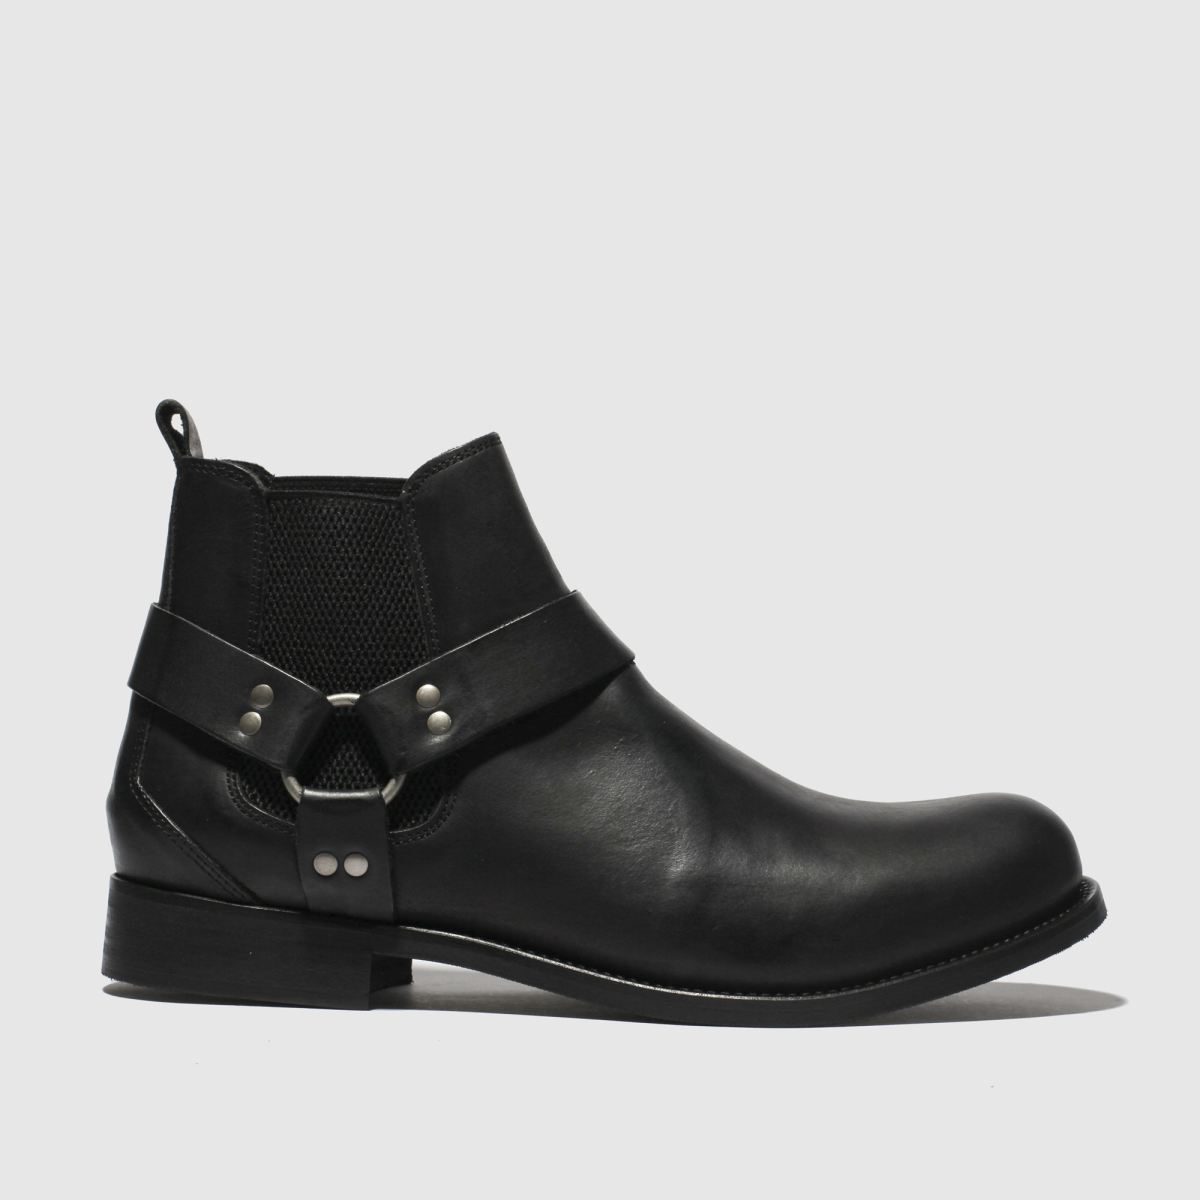 Schuh Black Henry Chelsea Boots